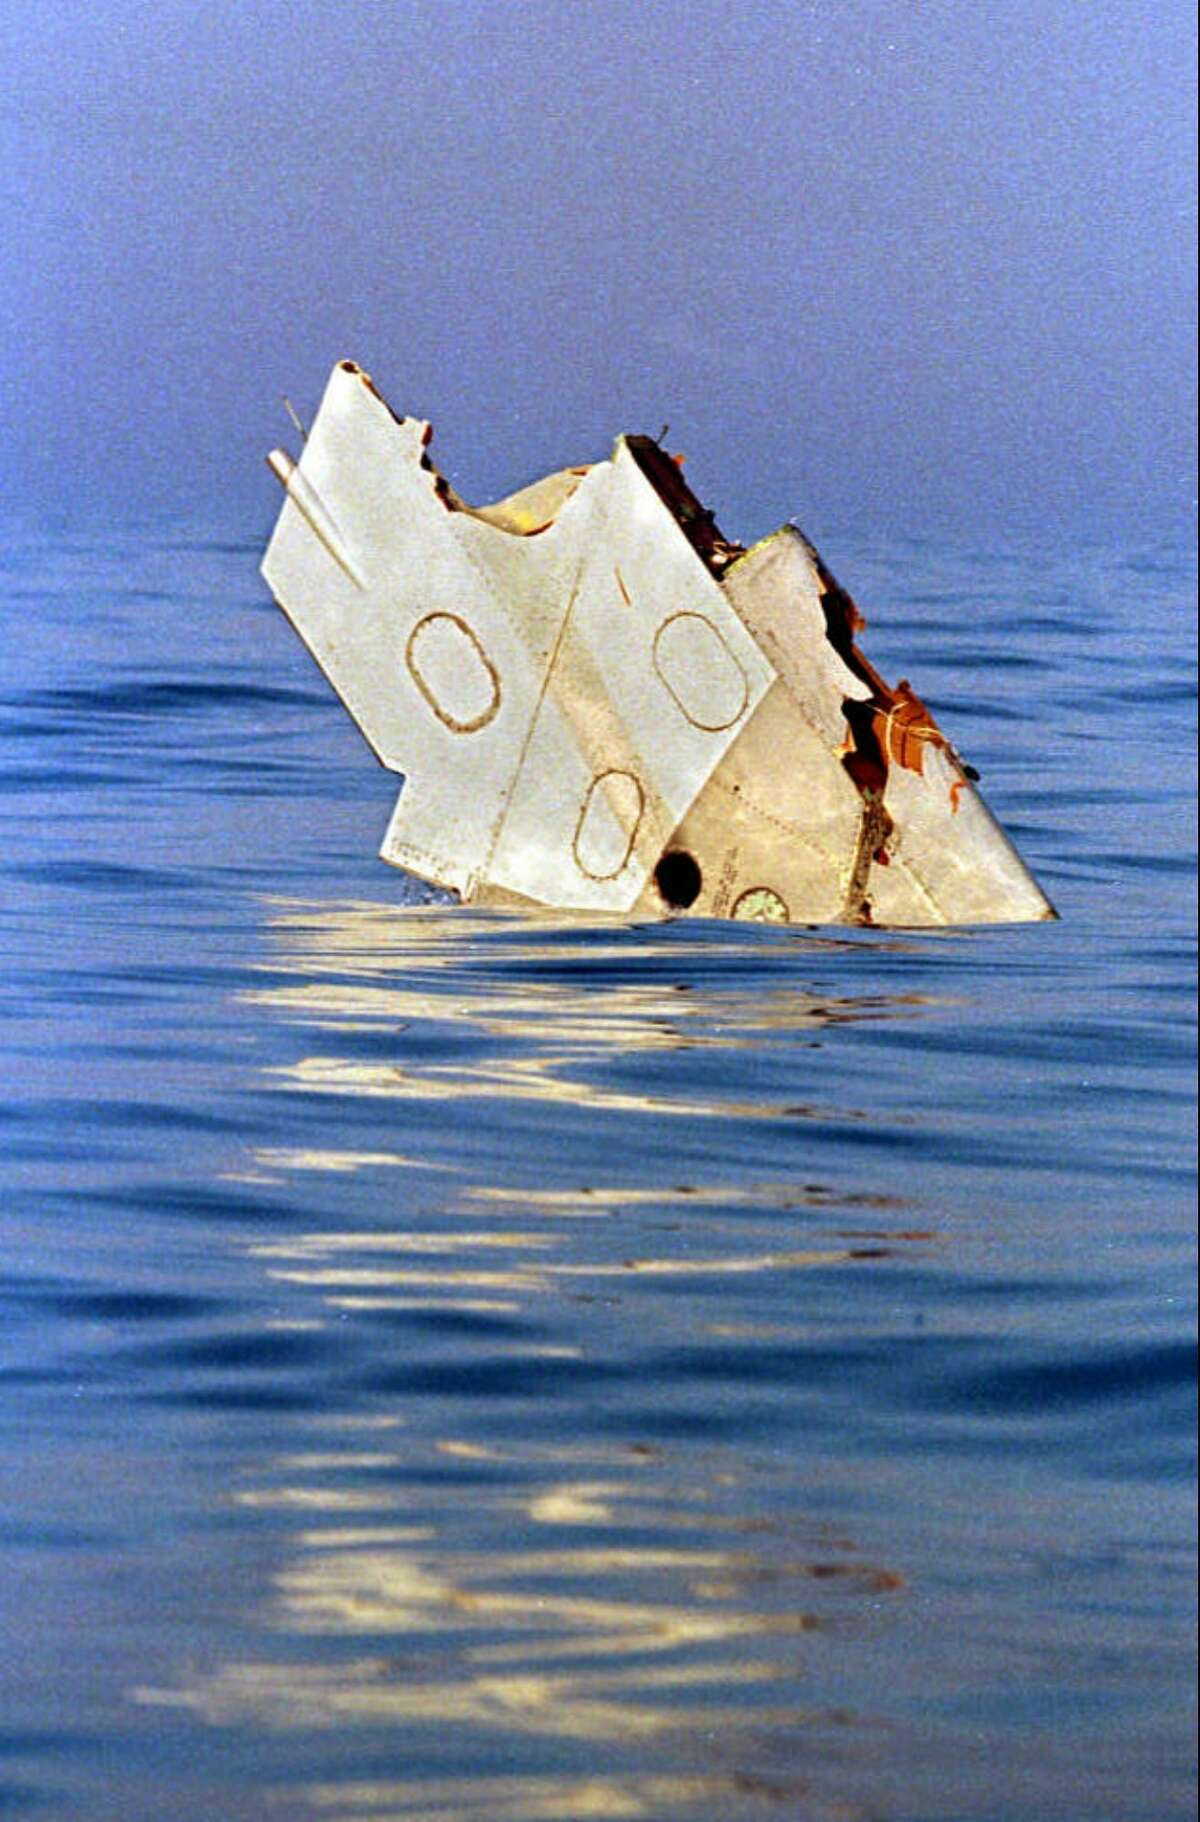 FILE - In this July 18, 1996, file photo, a piece of debris from TWA Flight 800 floats in the Atlantic Ocean off Long Island the day after the Boeing 747, carrying 230 people, exploded in a ball of fire, killing everyone on board. Twenty years later, some still debate National Transportation Safety Board findings that the aircraft was brought down by a center fuel-tank explosion ignited by a spark from a short circuit. (John Levy/ AFP via AP, Pool, File) ORG XMIT: NYR301